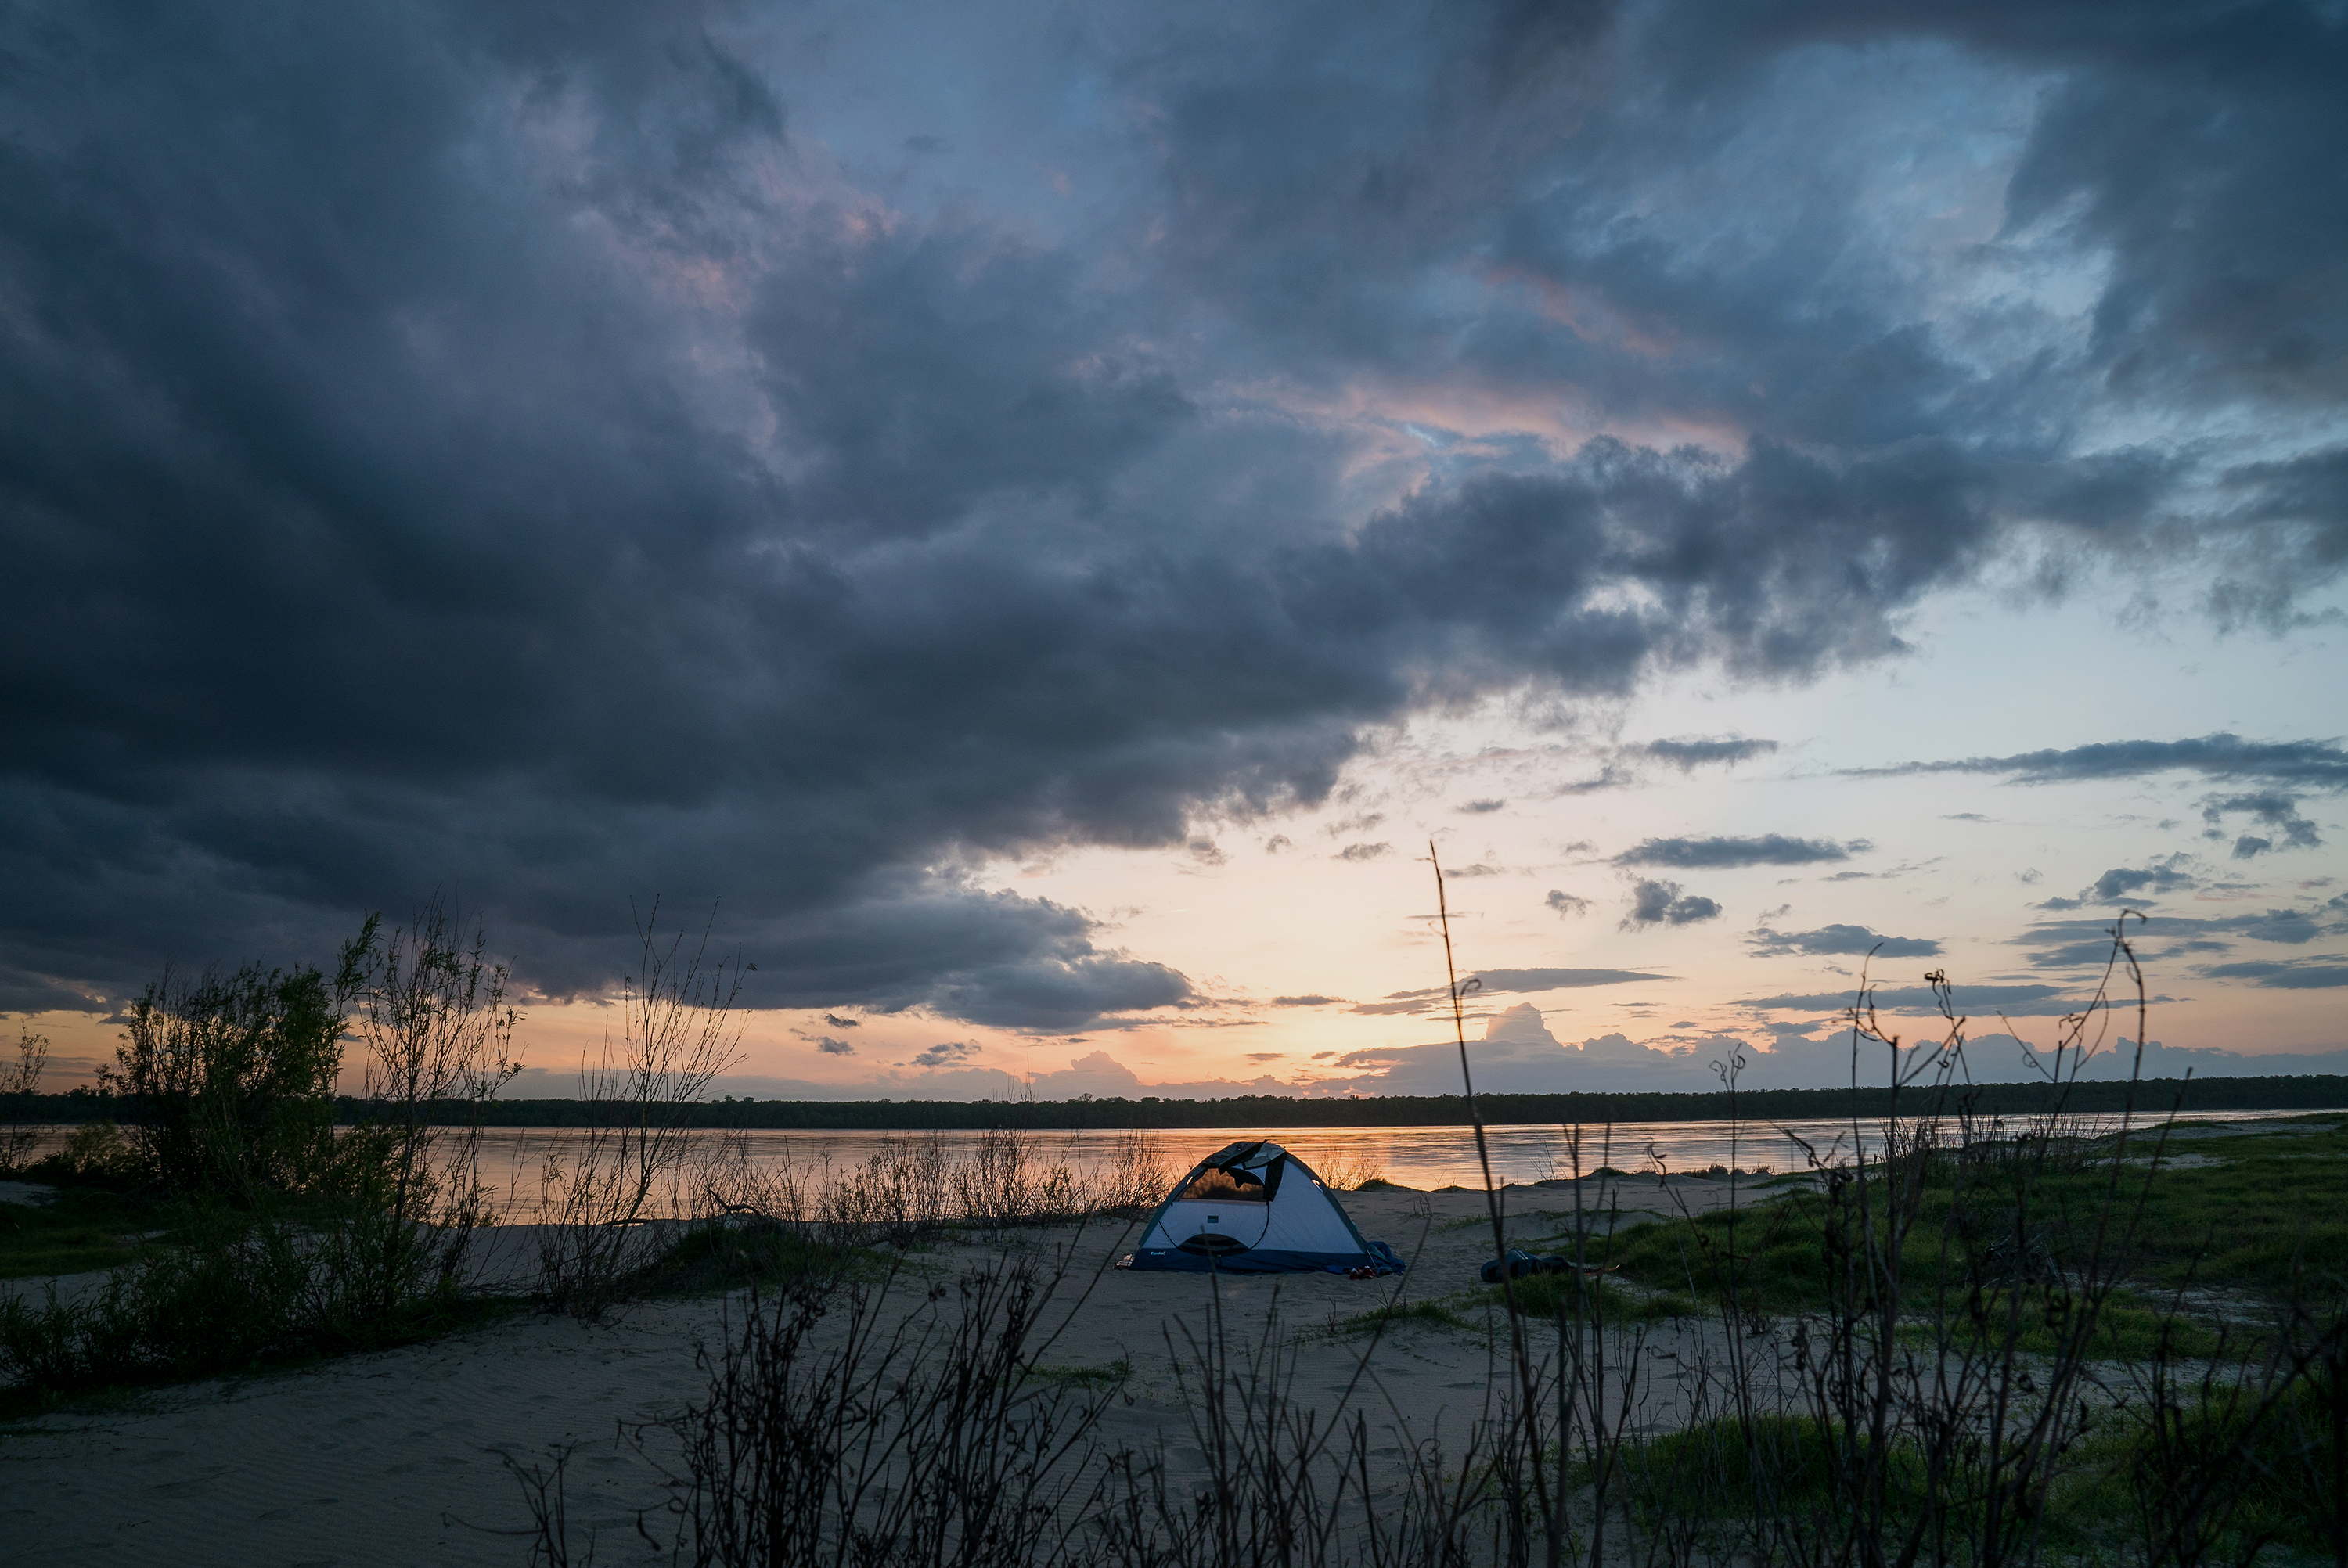 The sun sets over the author's campsite.